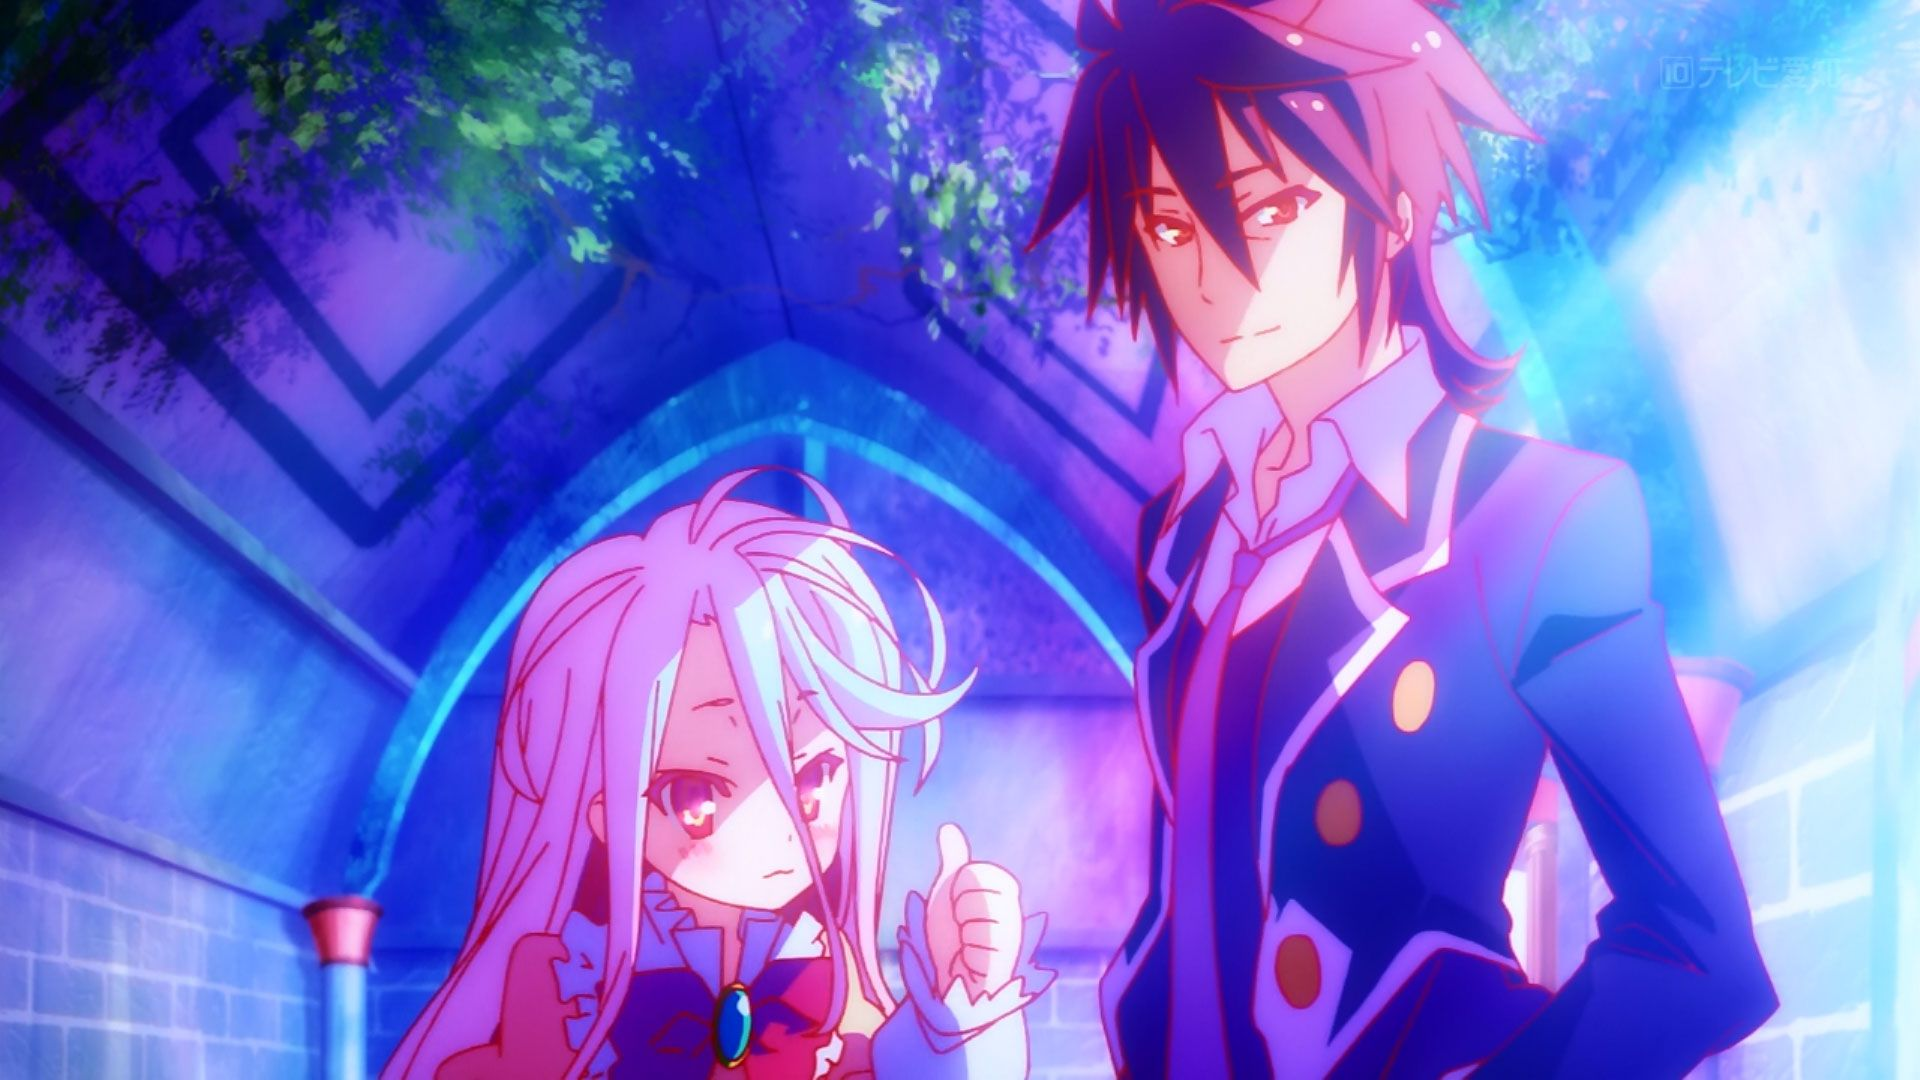 No Game No Lifee No Game No Life Anime Wallpaper 40535964